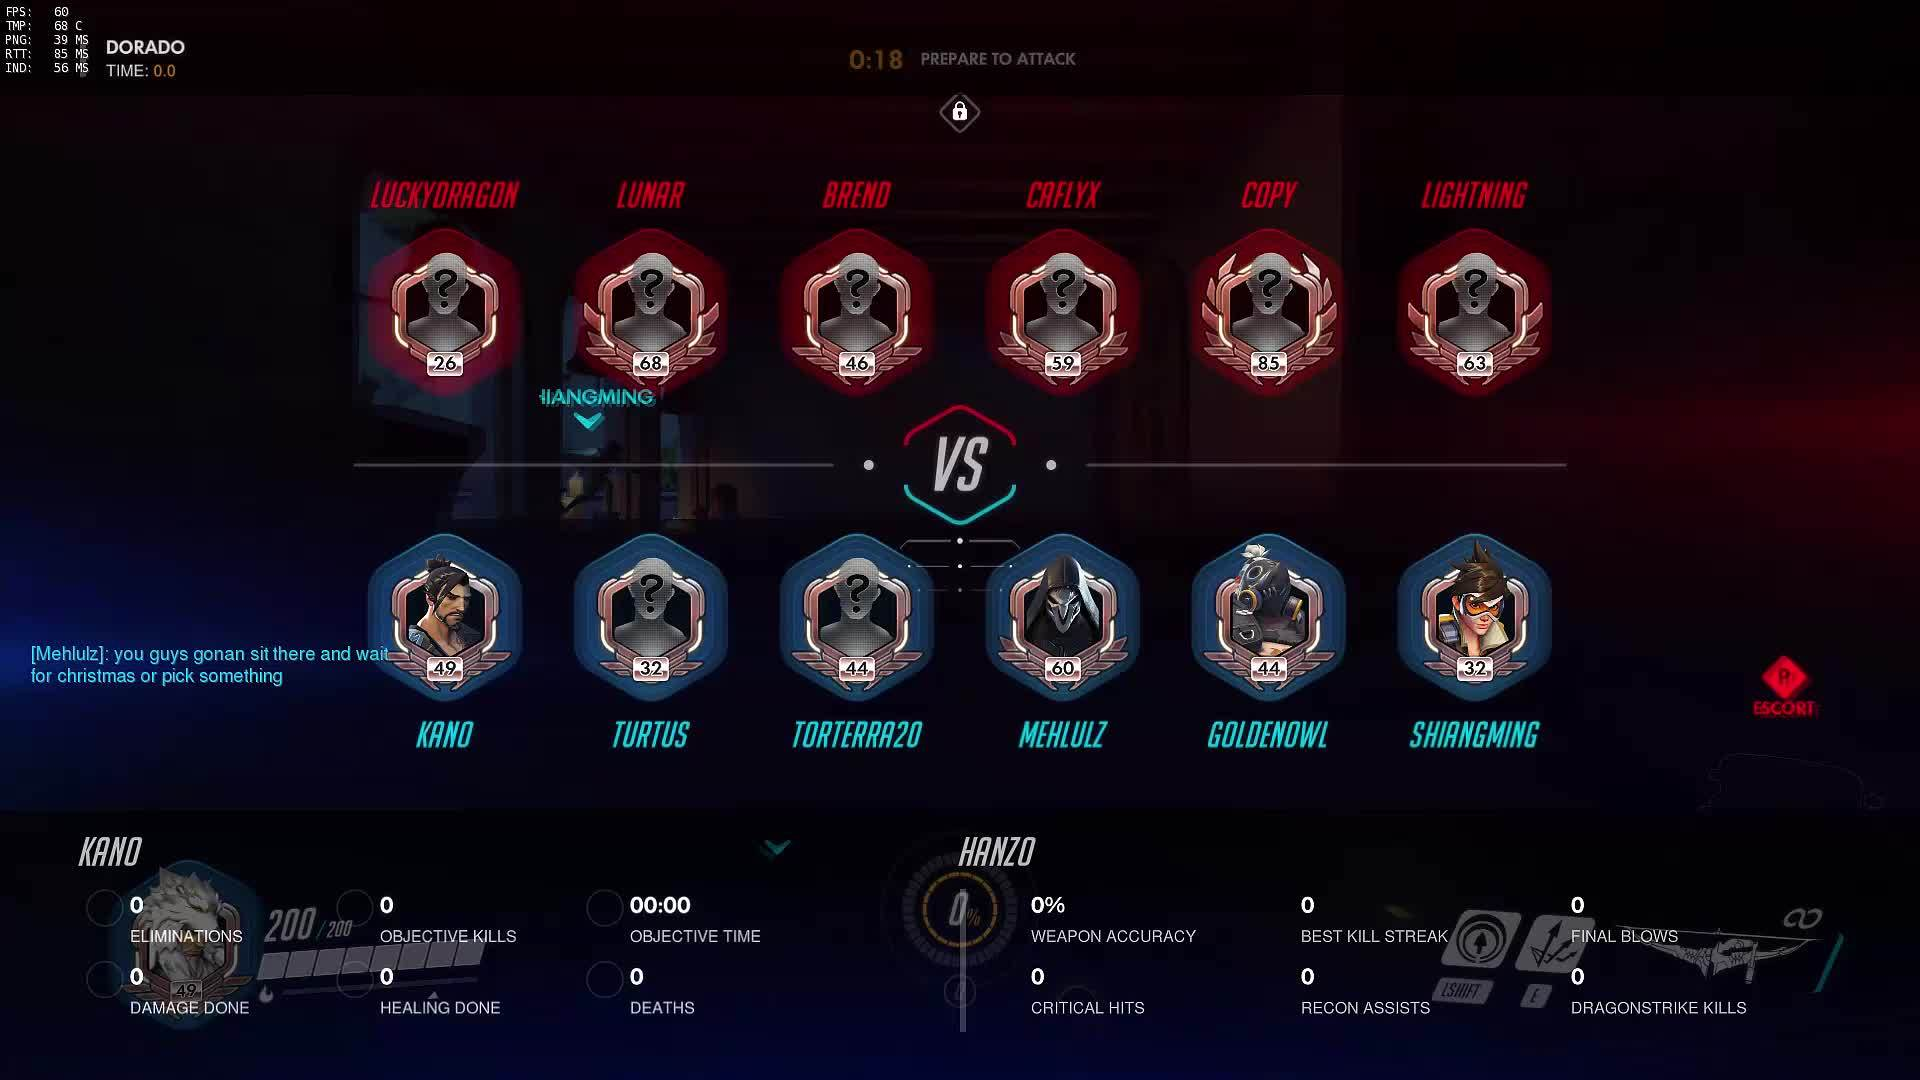 Overwatch Fail Gifs Search | Search & Share on Homdor